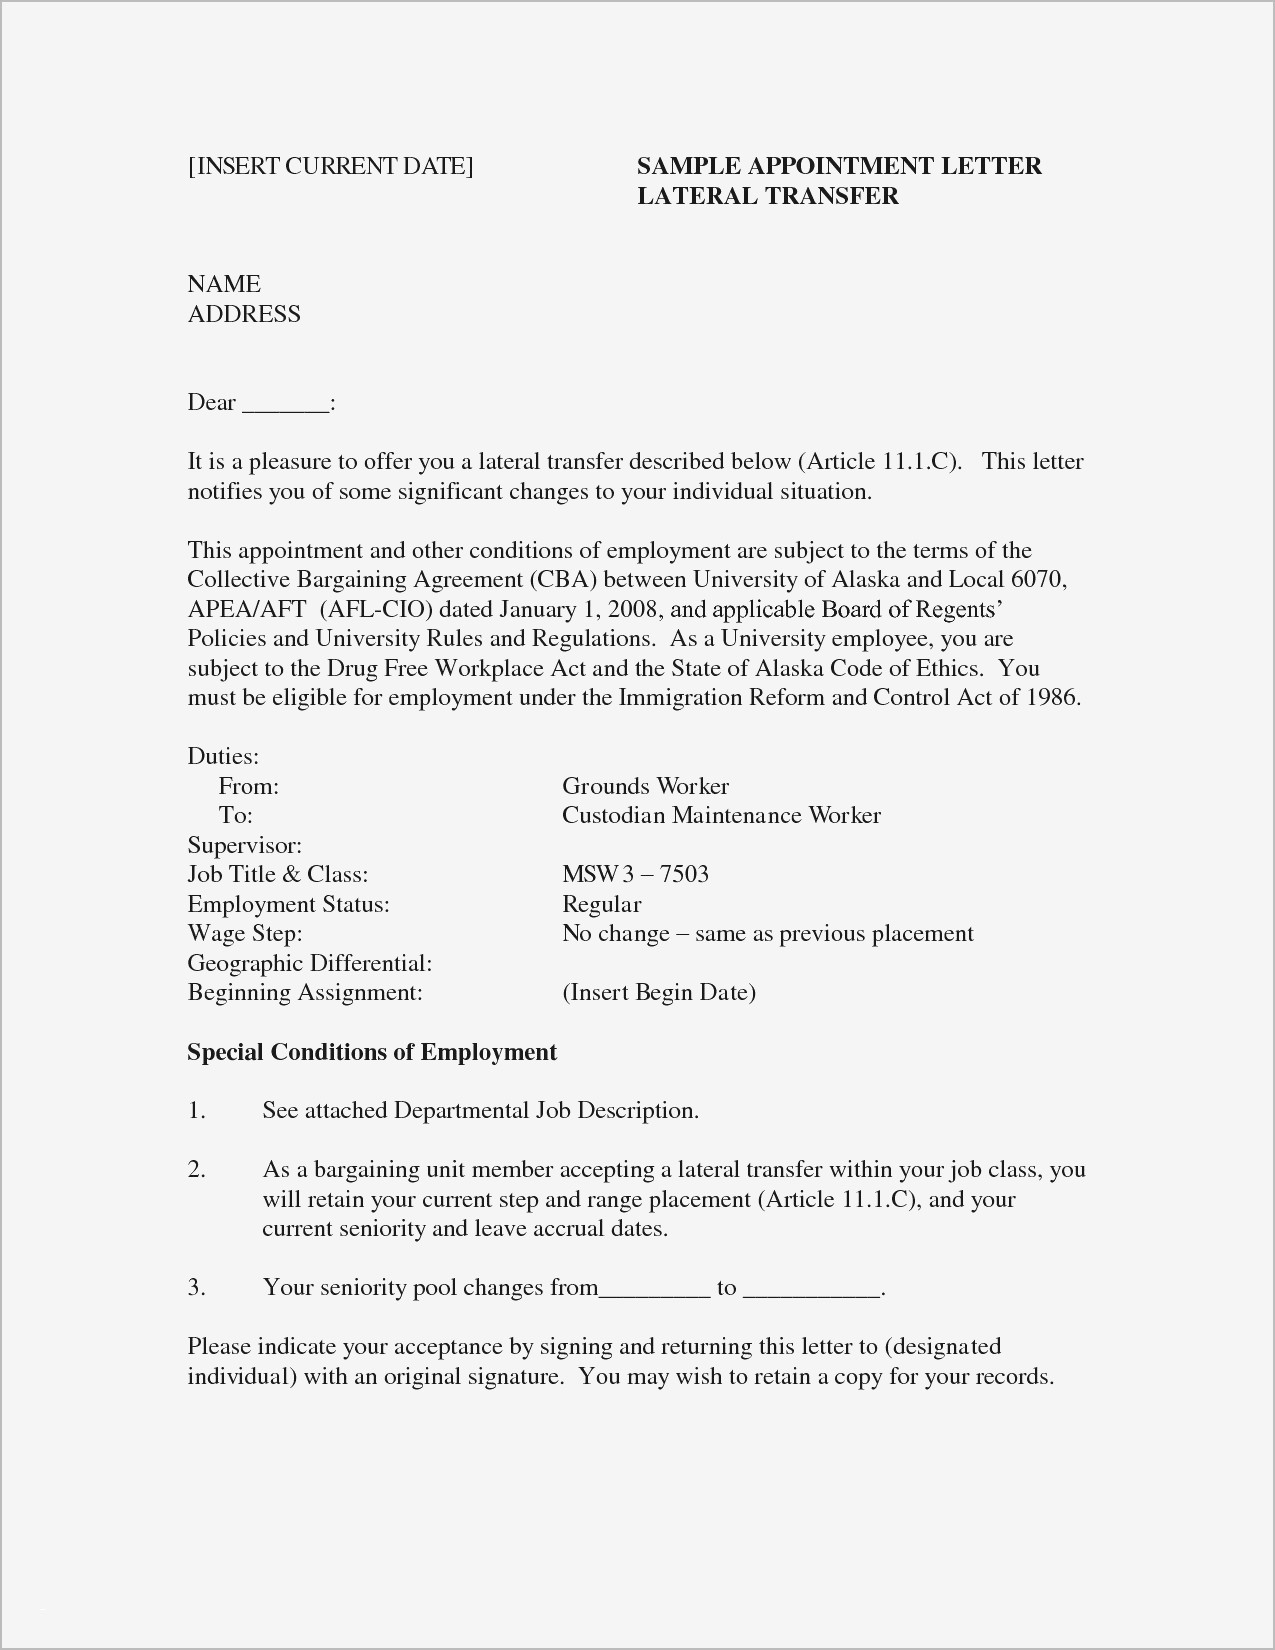 Mechanic Resume Objective - Electronic Technician Resume Objective Best Resume Template for